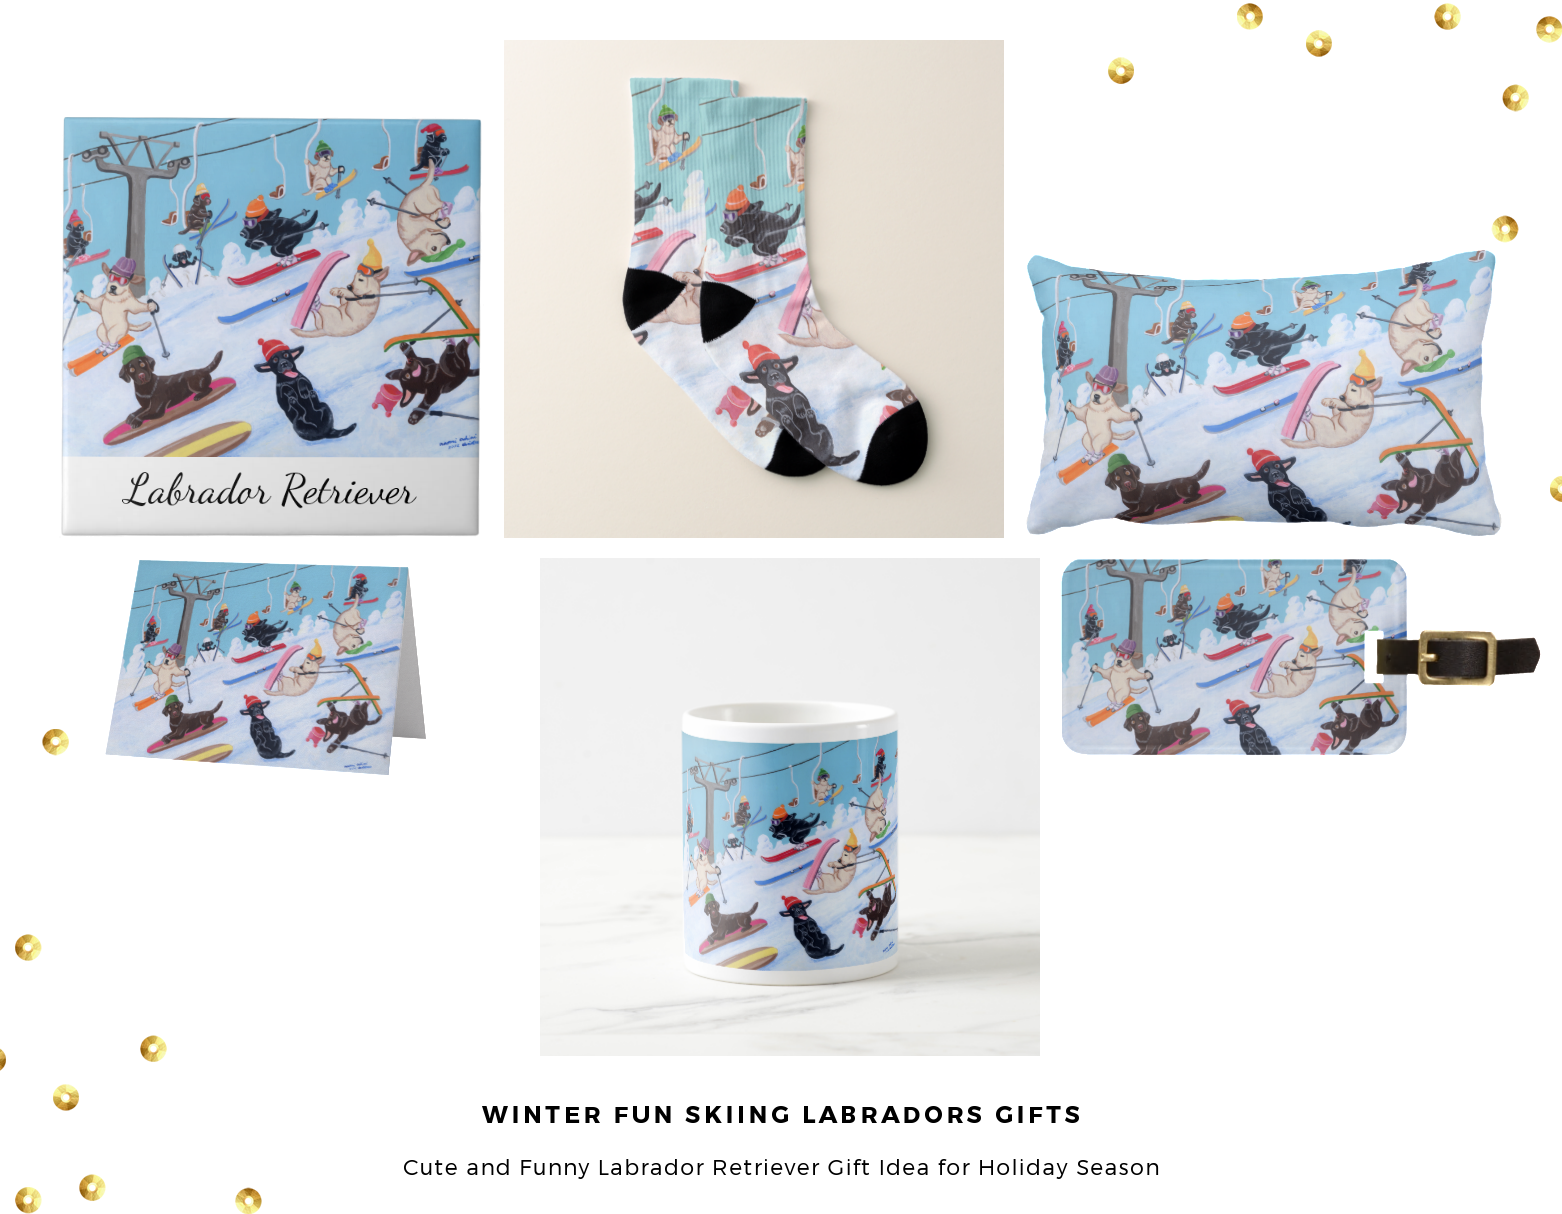 Winter Fun Skiing Labrador Gift Ideas for Labrador Lovers @zazzle